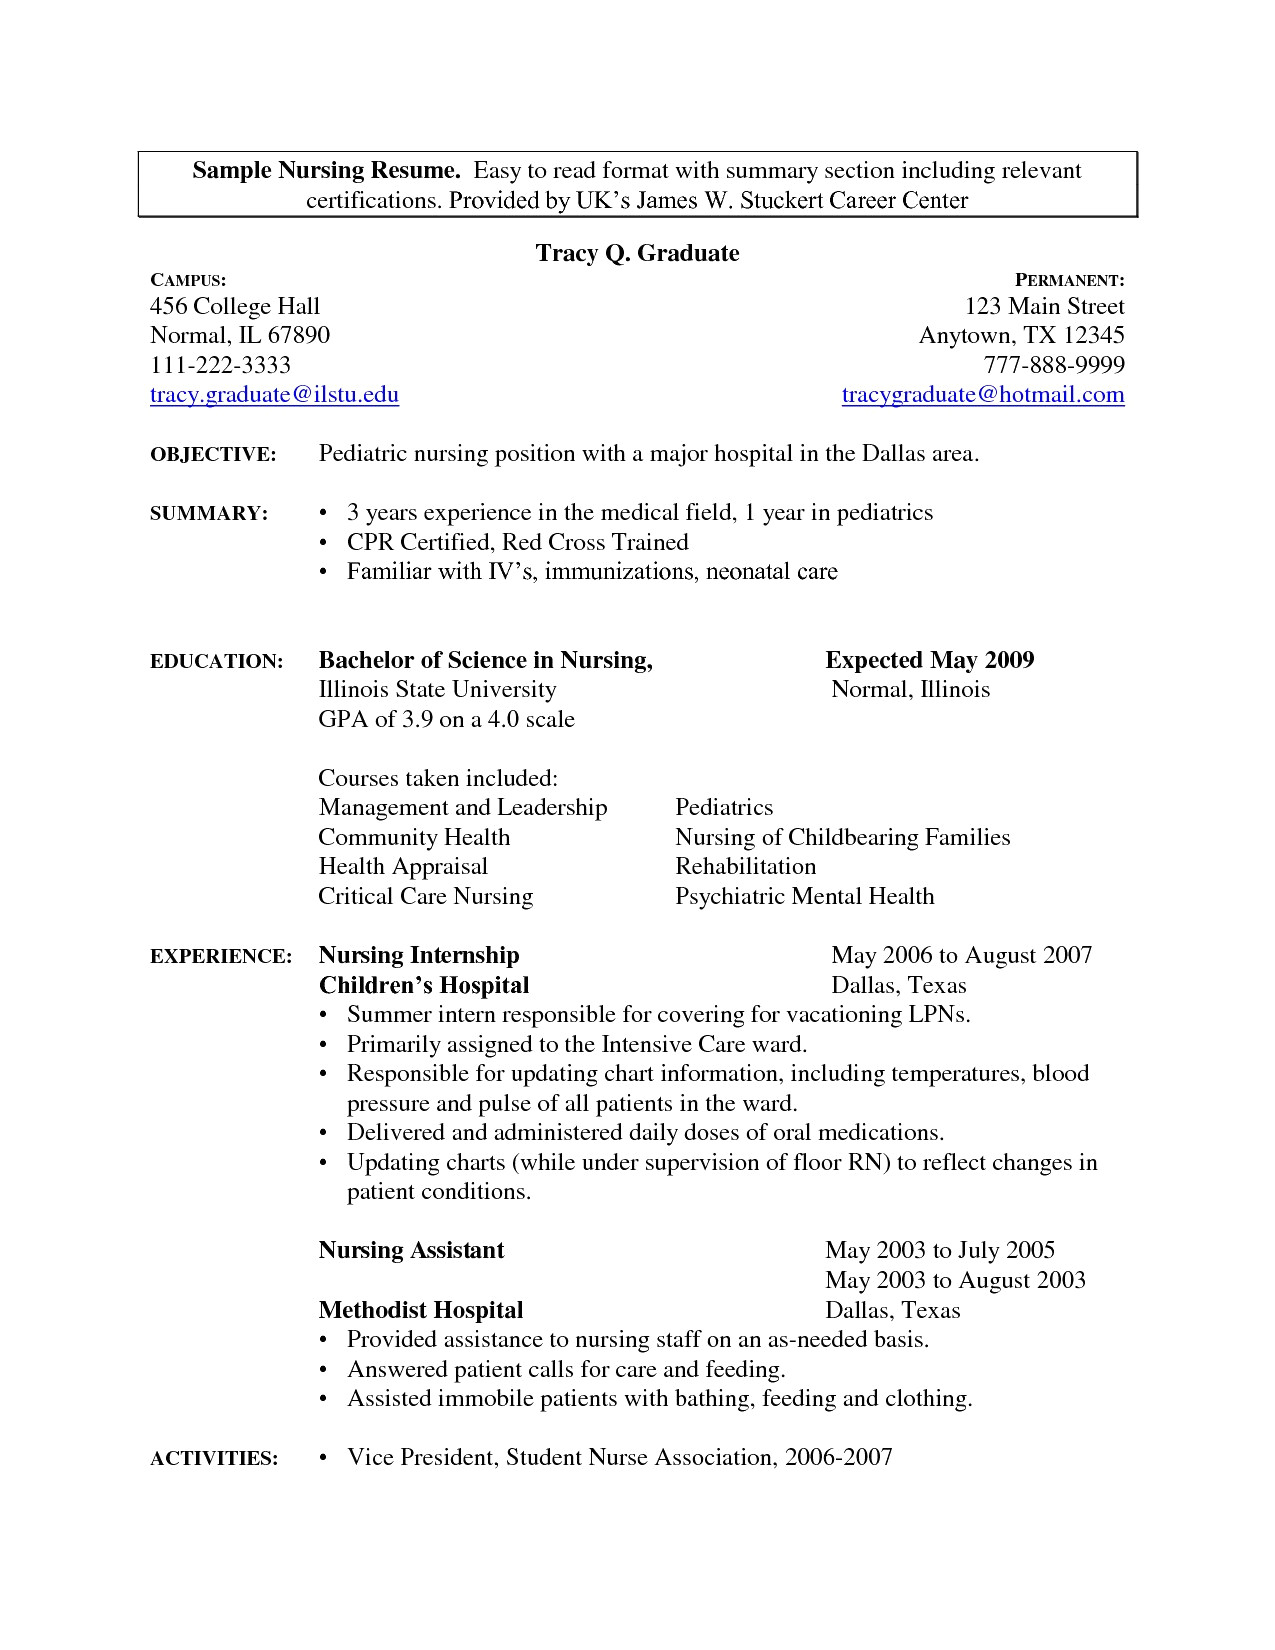 Resume Templates for Medical Field - 39 Awesome Sample Resume Skills